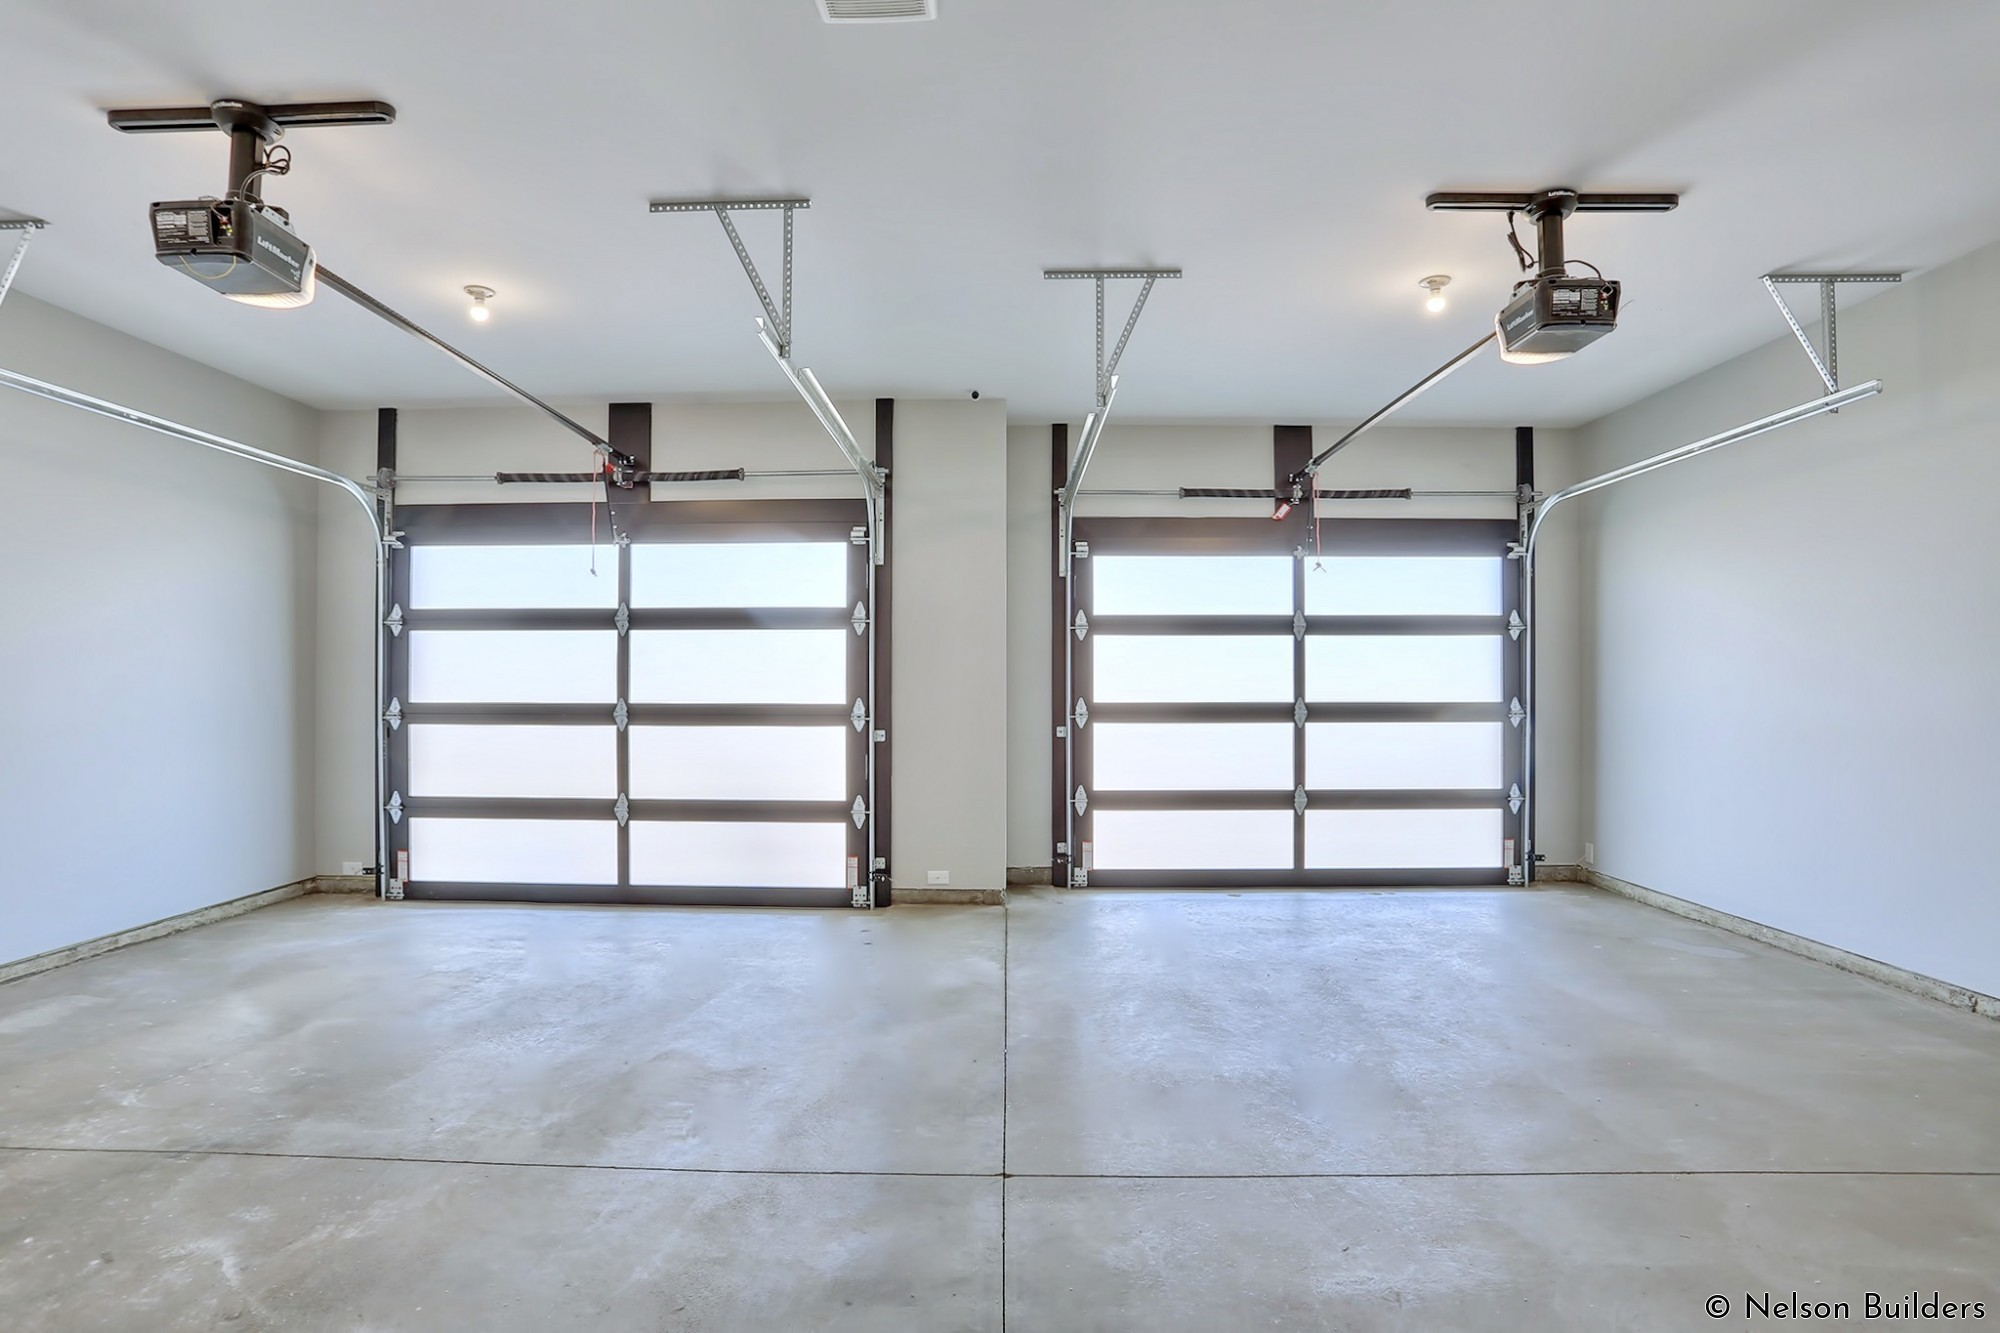 Not wanting to compromise on any space, the inside of the aluminum and glass garage doors were also wrapped in metal to give a clean, finished look.